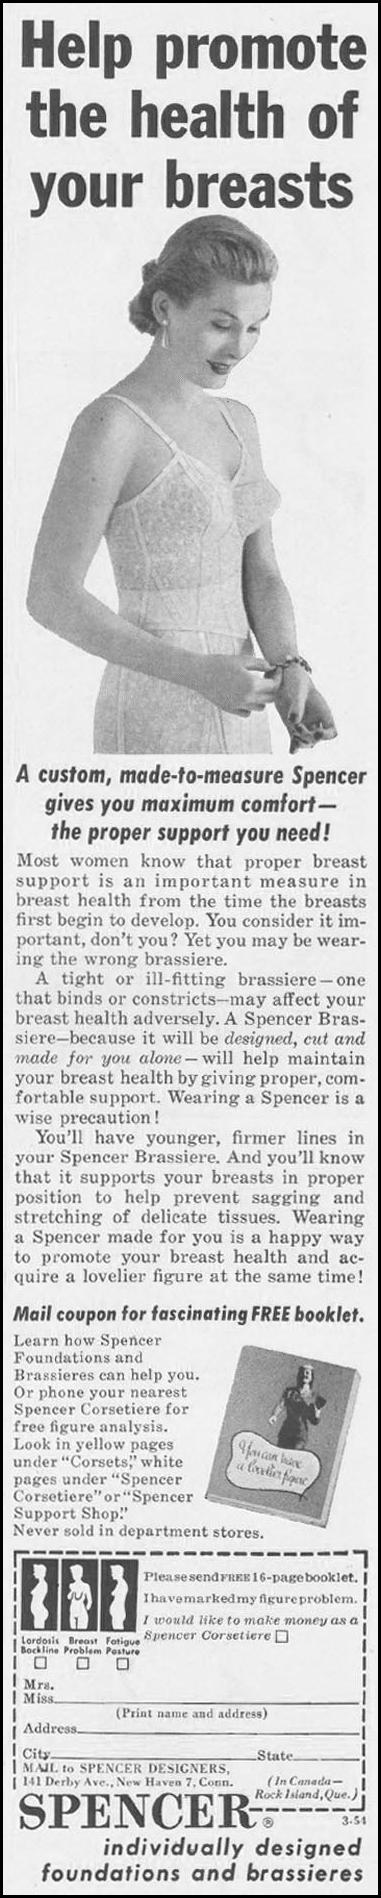 SPENCER FOUNDATIONS AND BRASSIERES LADIES' HOME JOURNAL 03/01/1954 p. 22